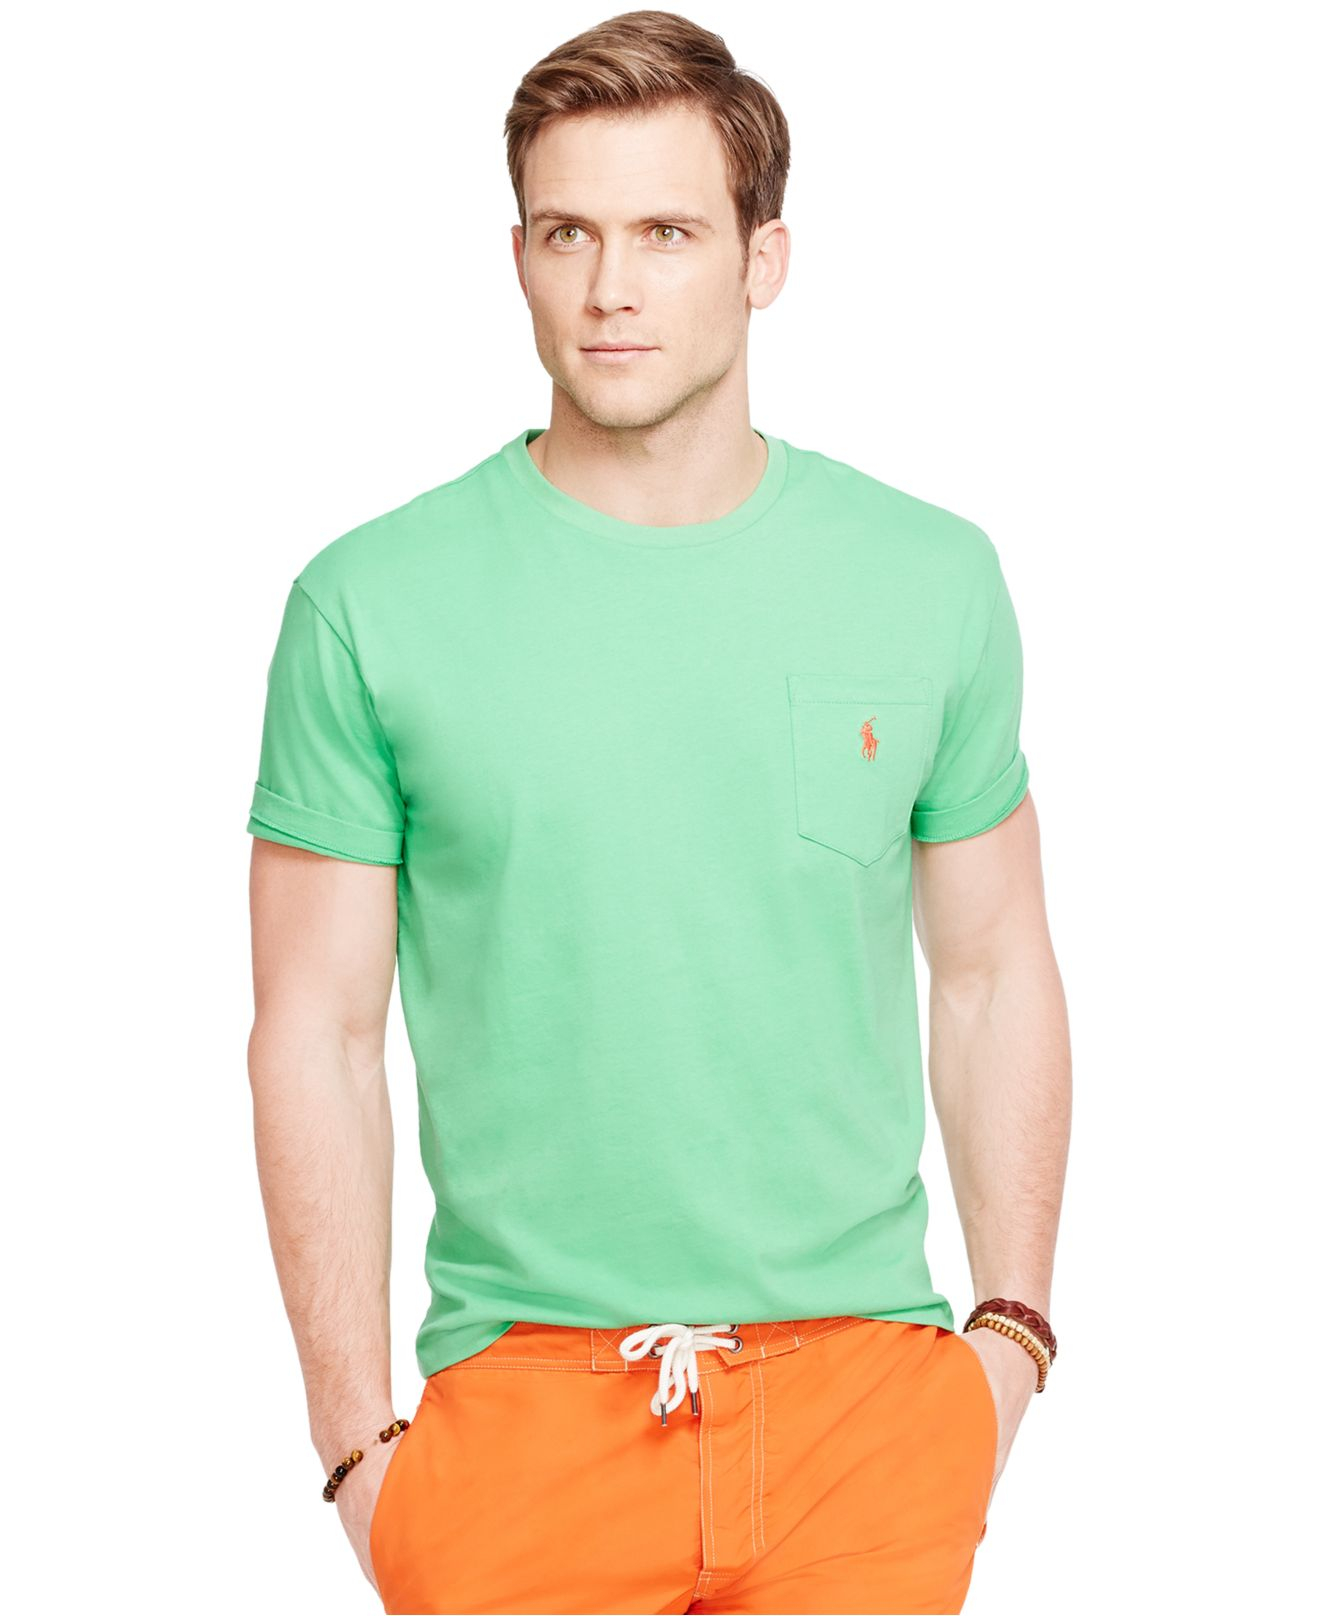 Polo ralph lauren crew neck pocket t shirt in green for for Polo t shirts with pockets